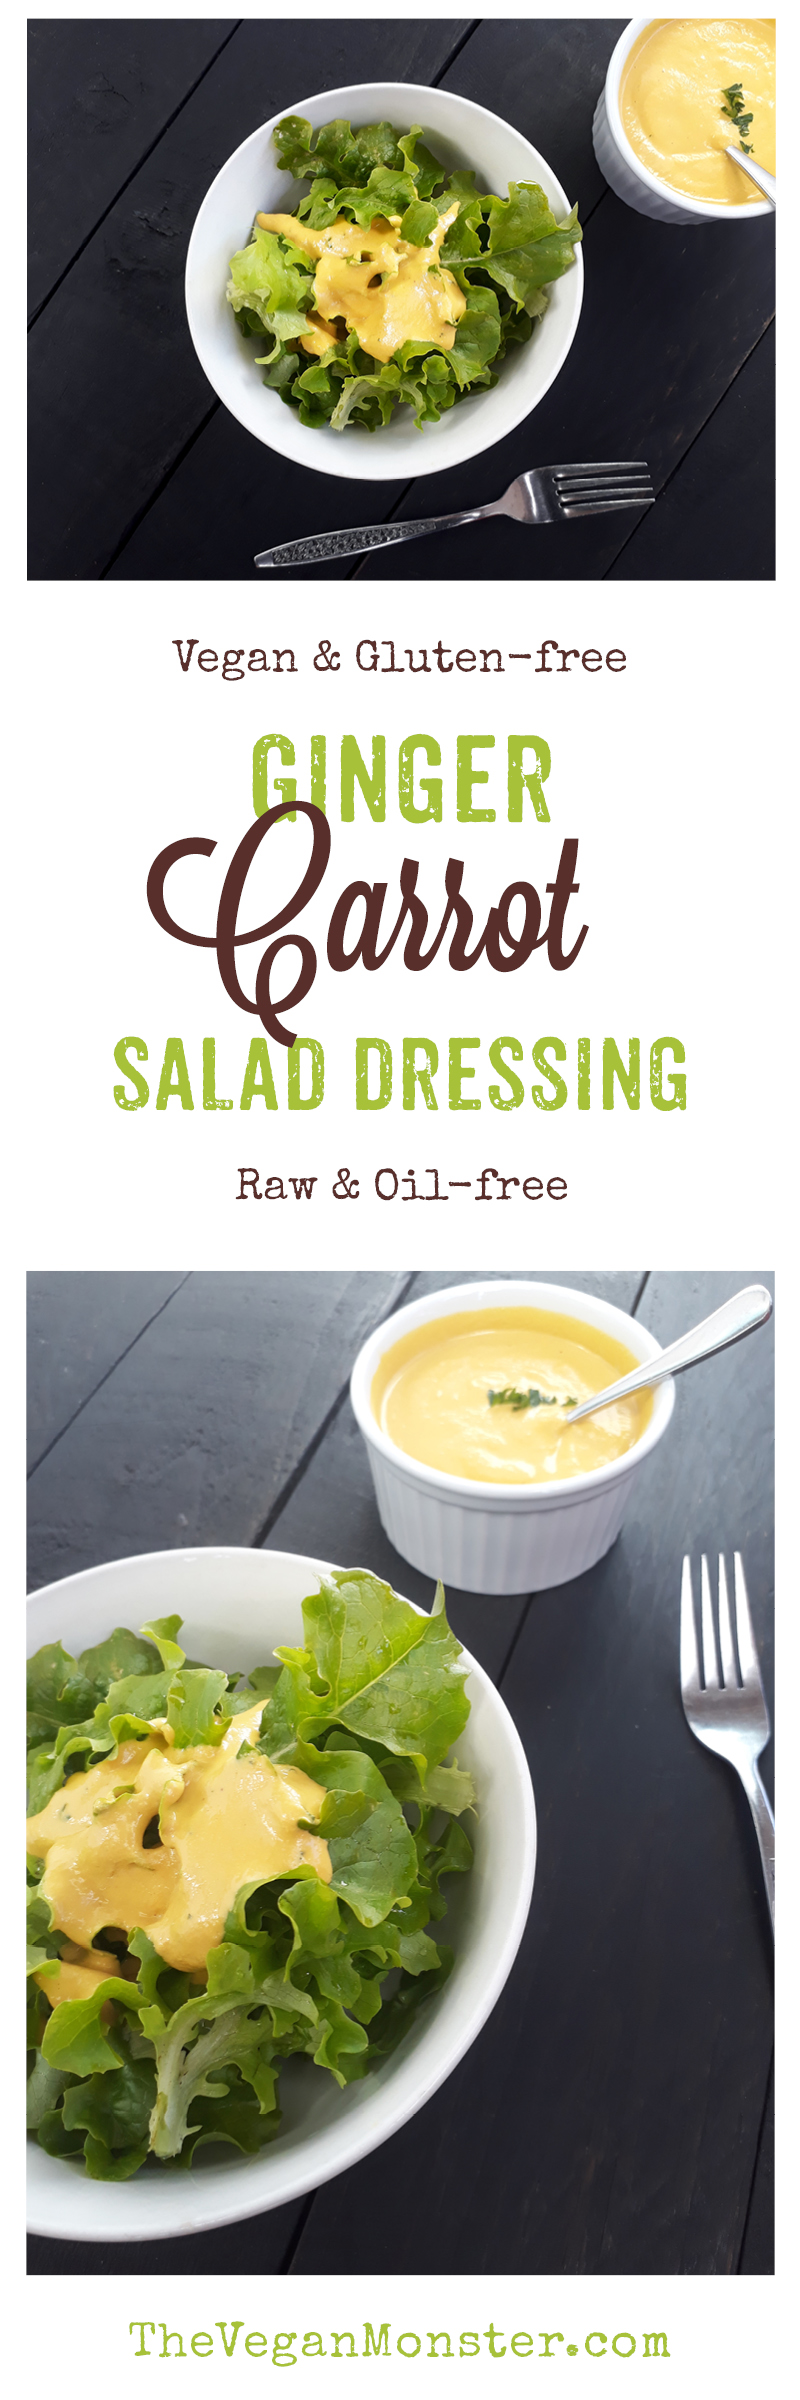 Vegan Gluten-free Raw Ginger Carrot Salad Dressing Without Oil Recipe